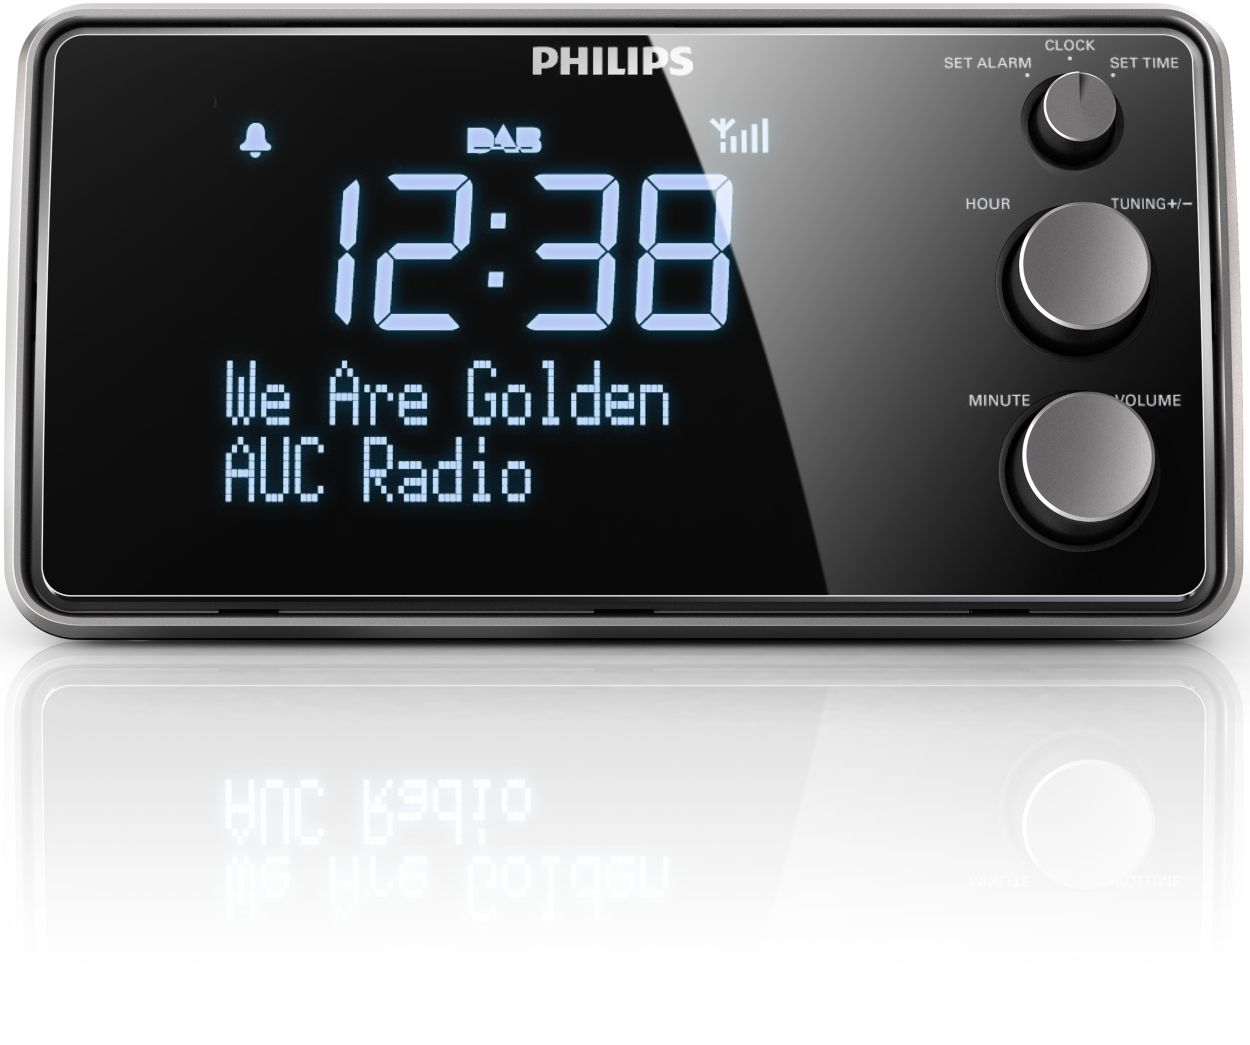 how to set the time on a philips docking system